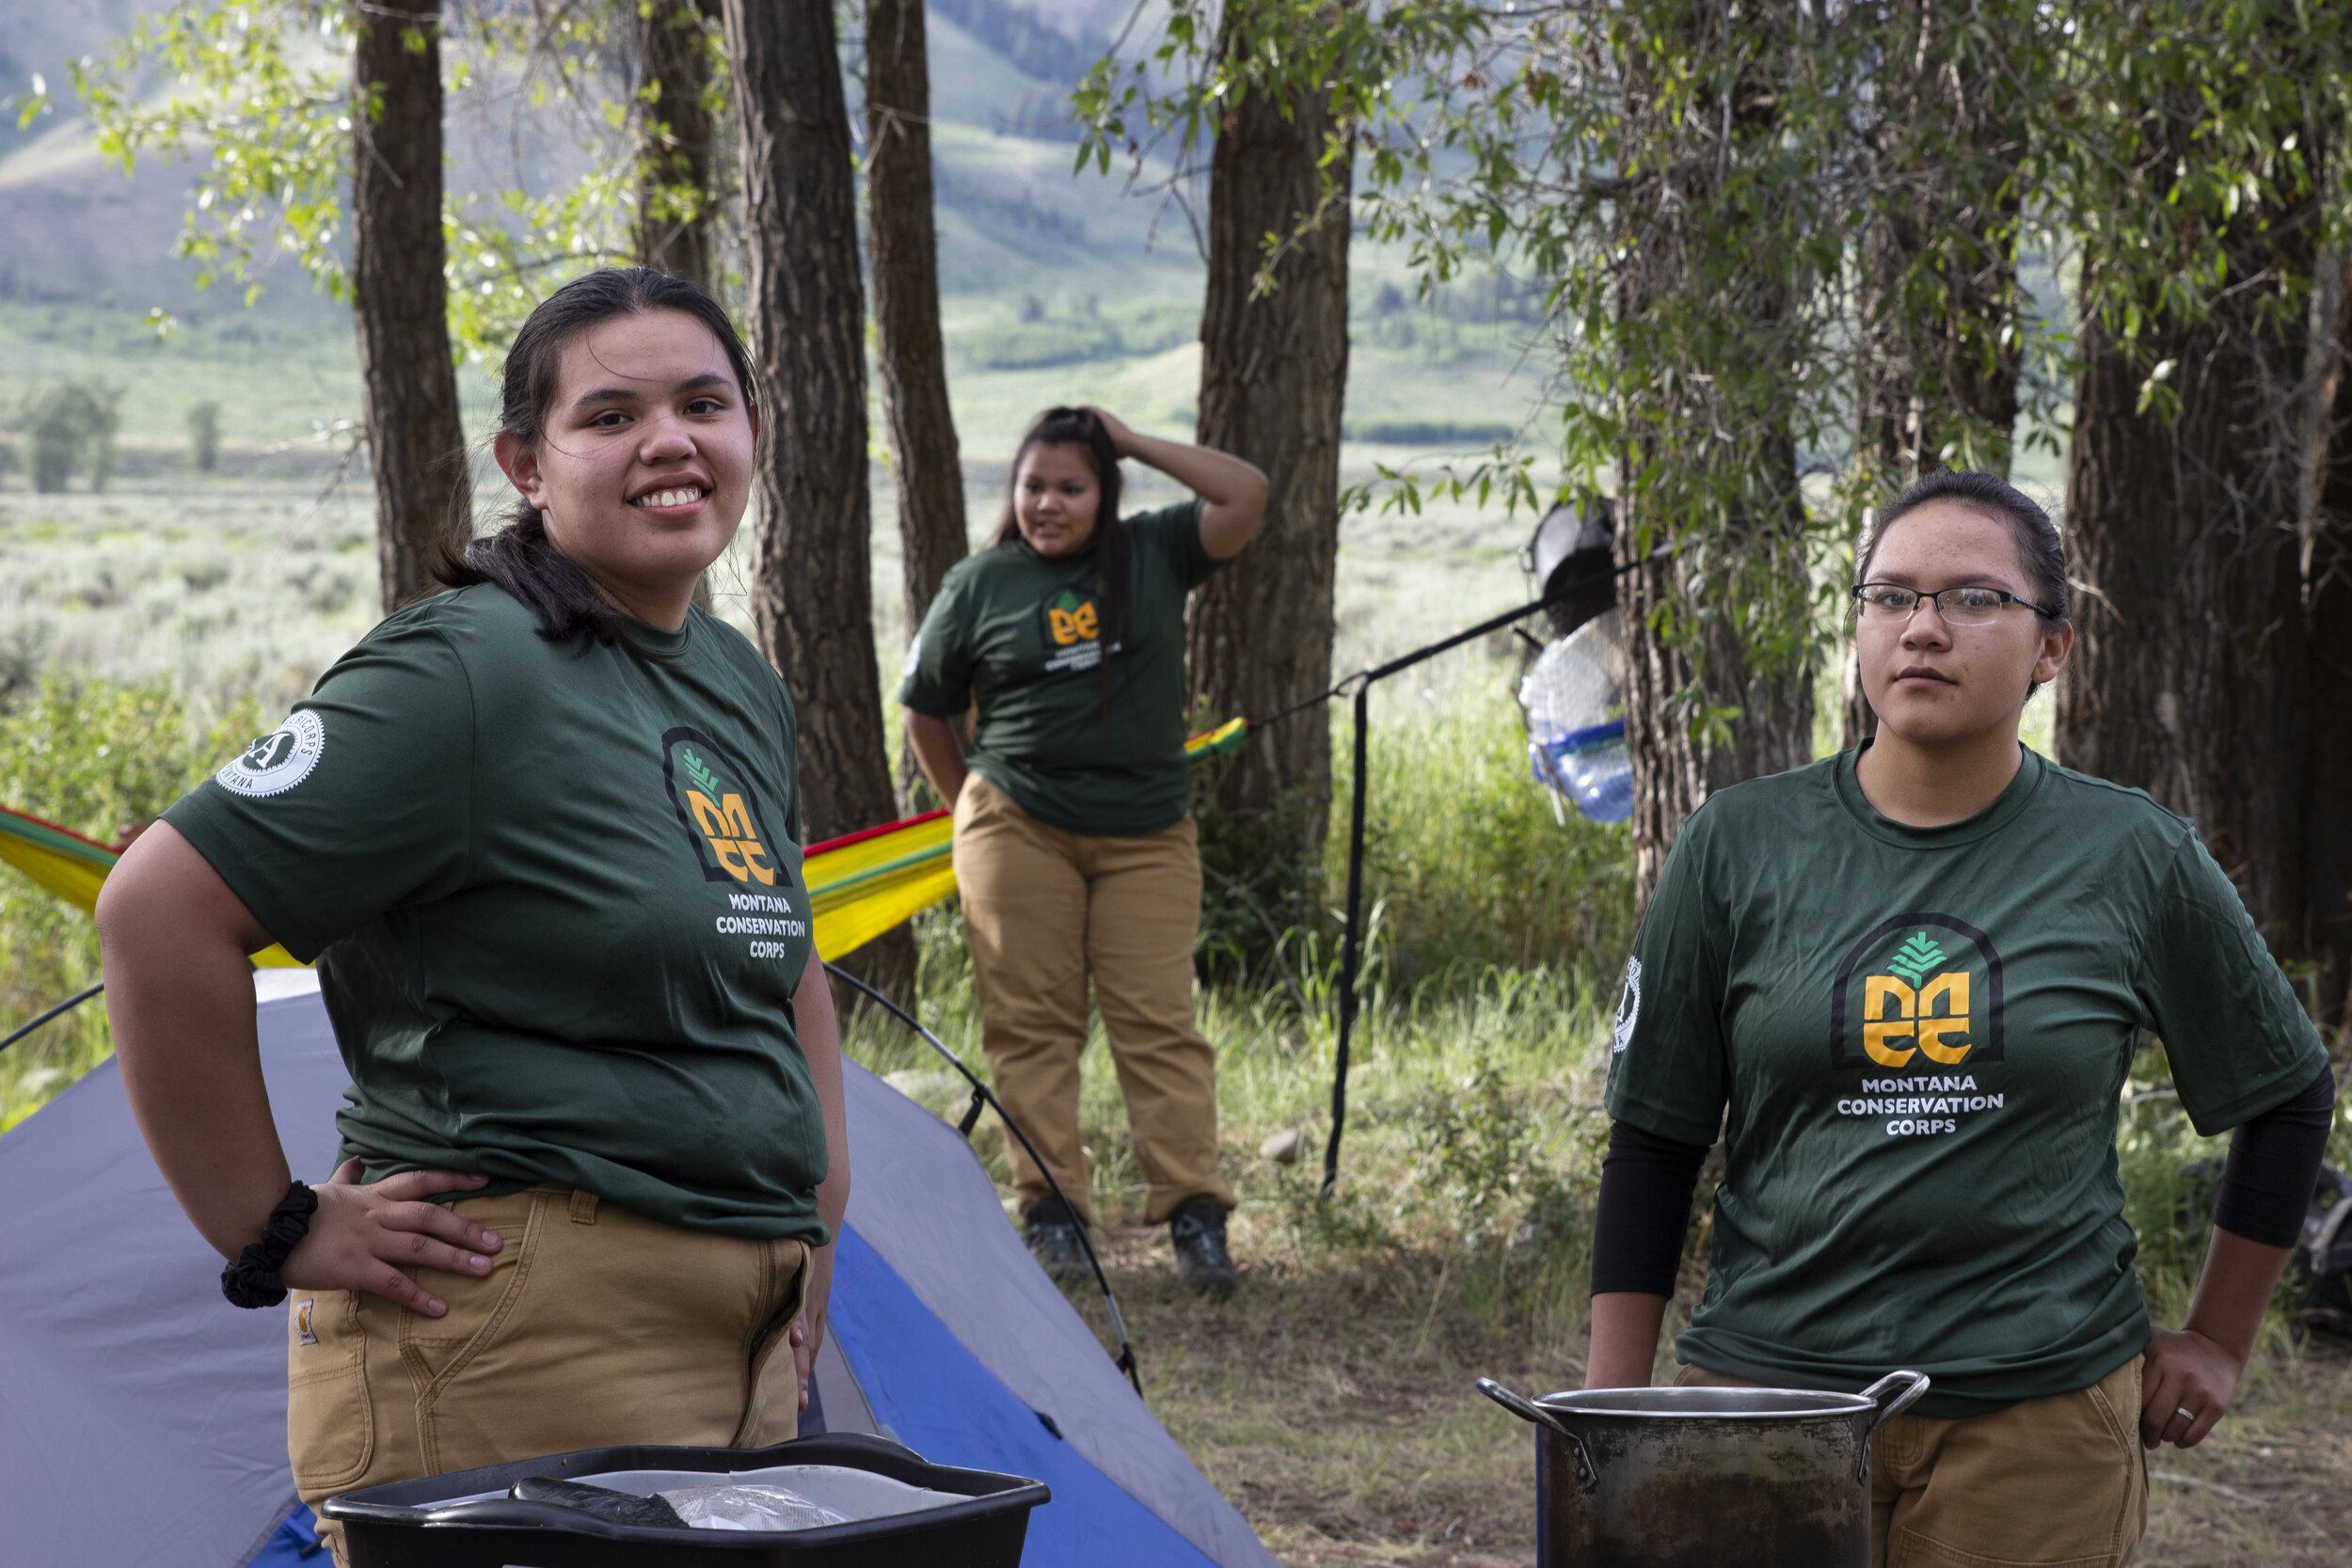 Two weeks of camaraderie and preservation of our public lands